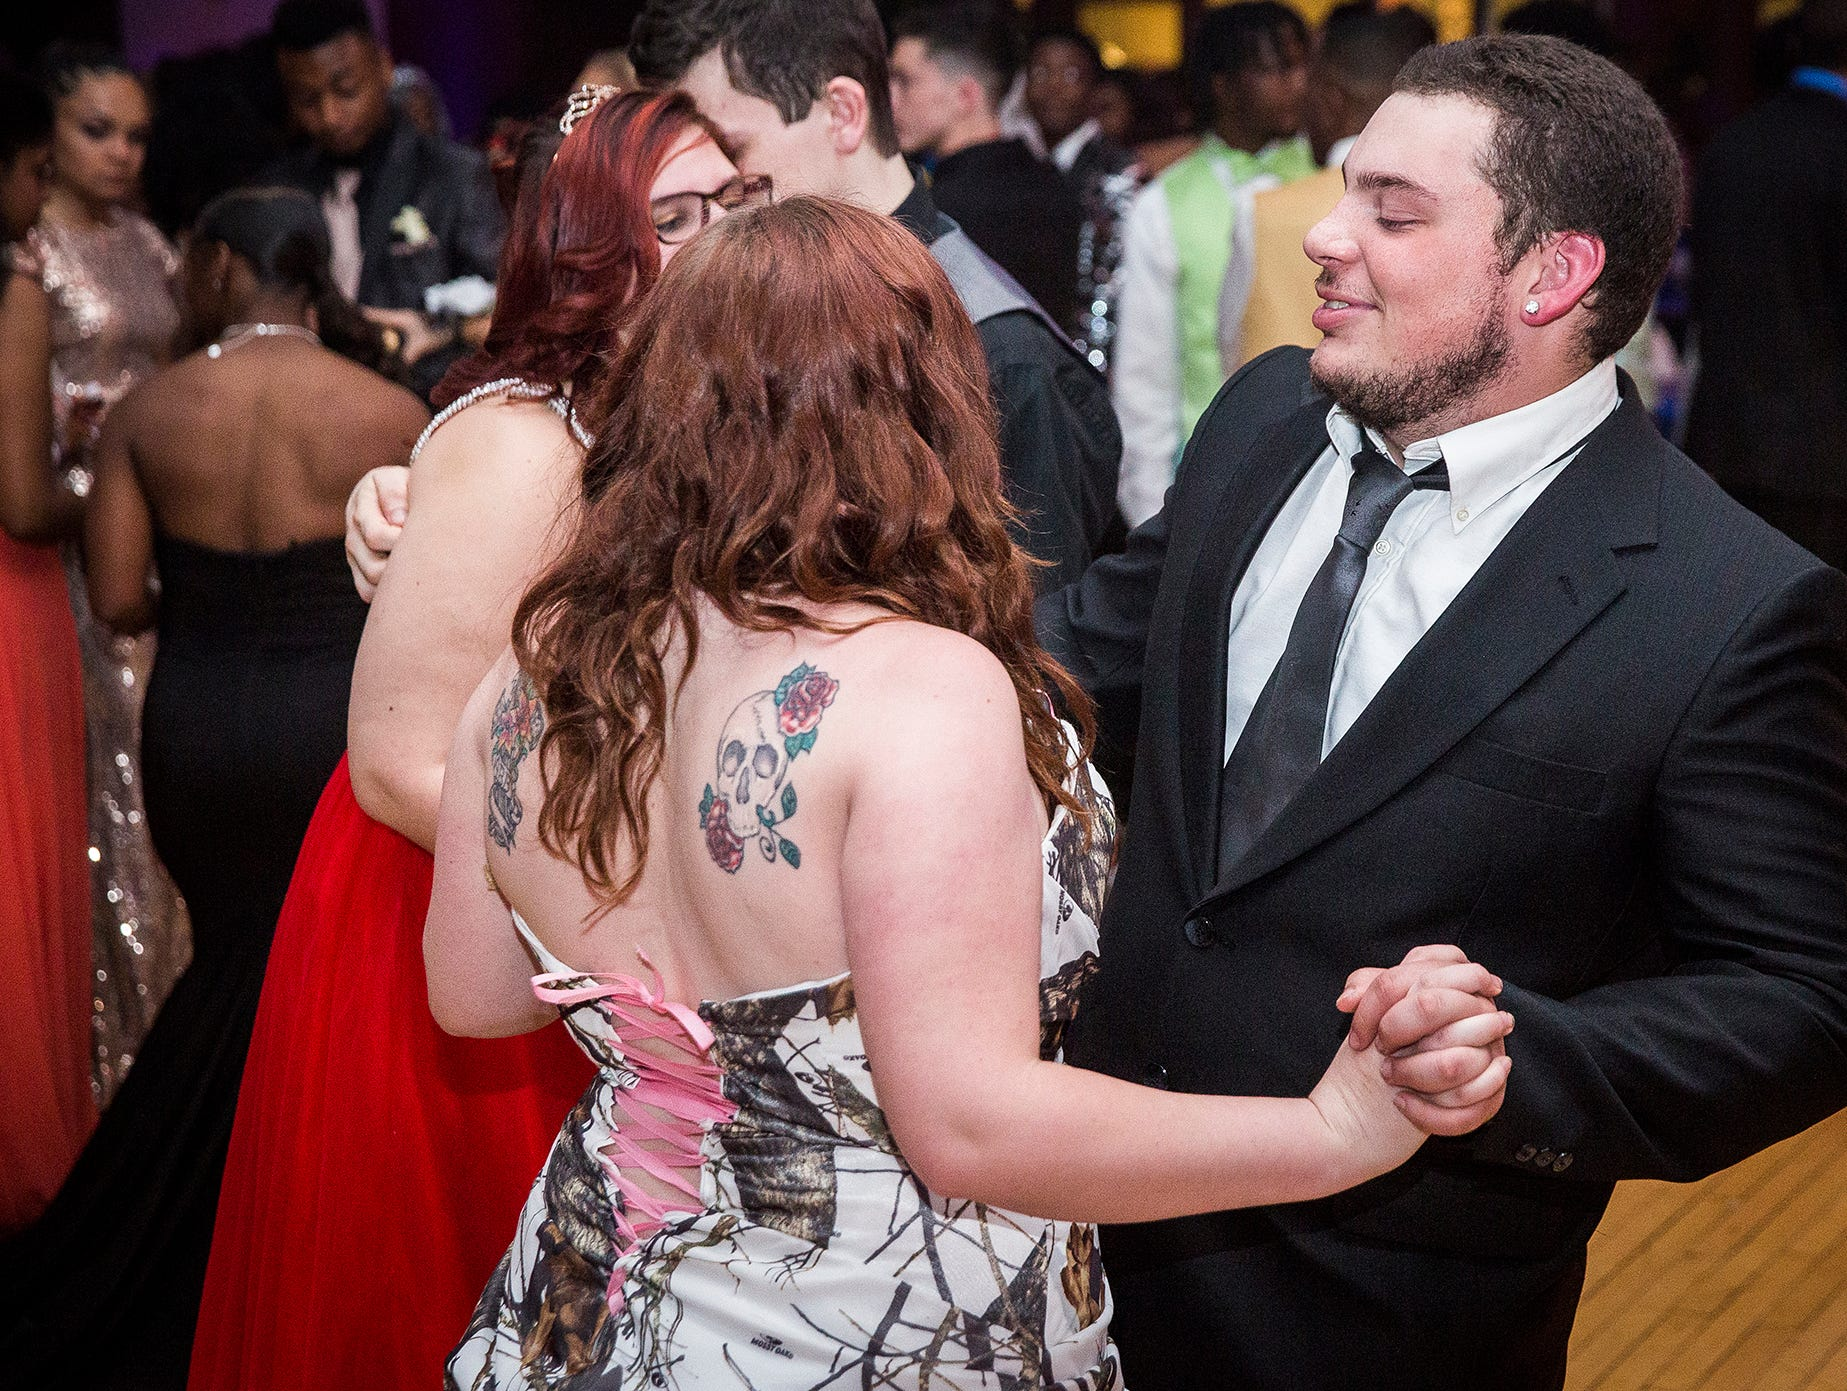 Central students celebrate their 2019 prom at Ball State's Student Center Saturday night.